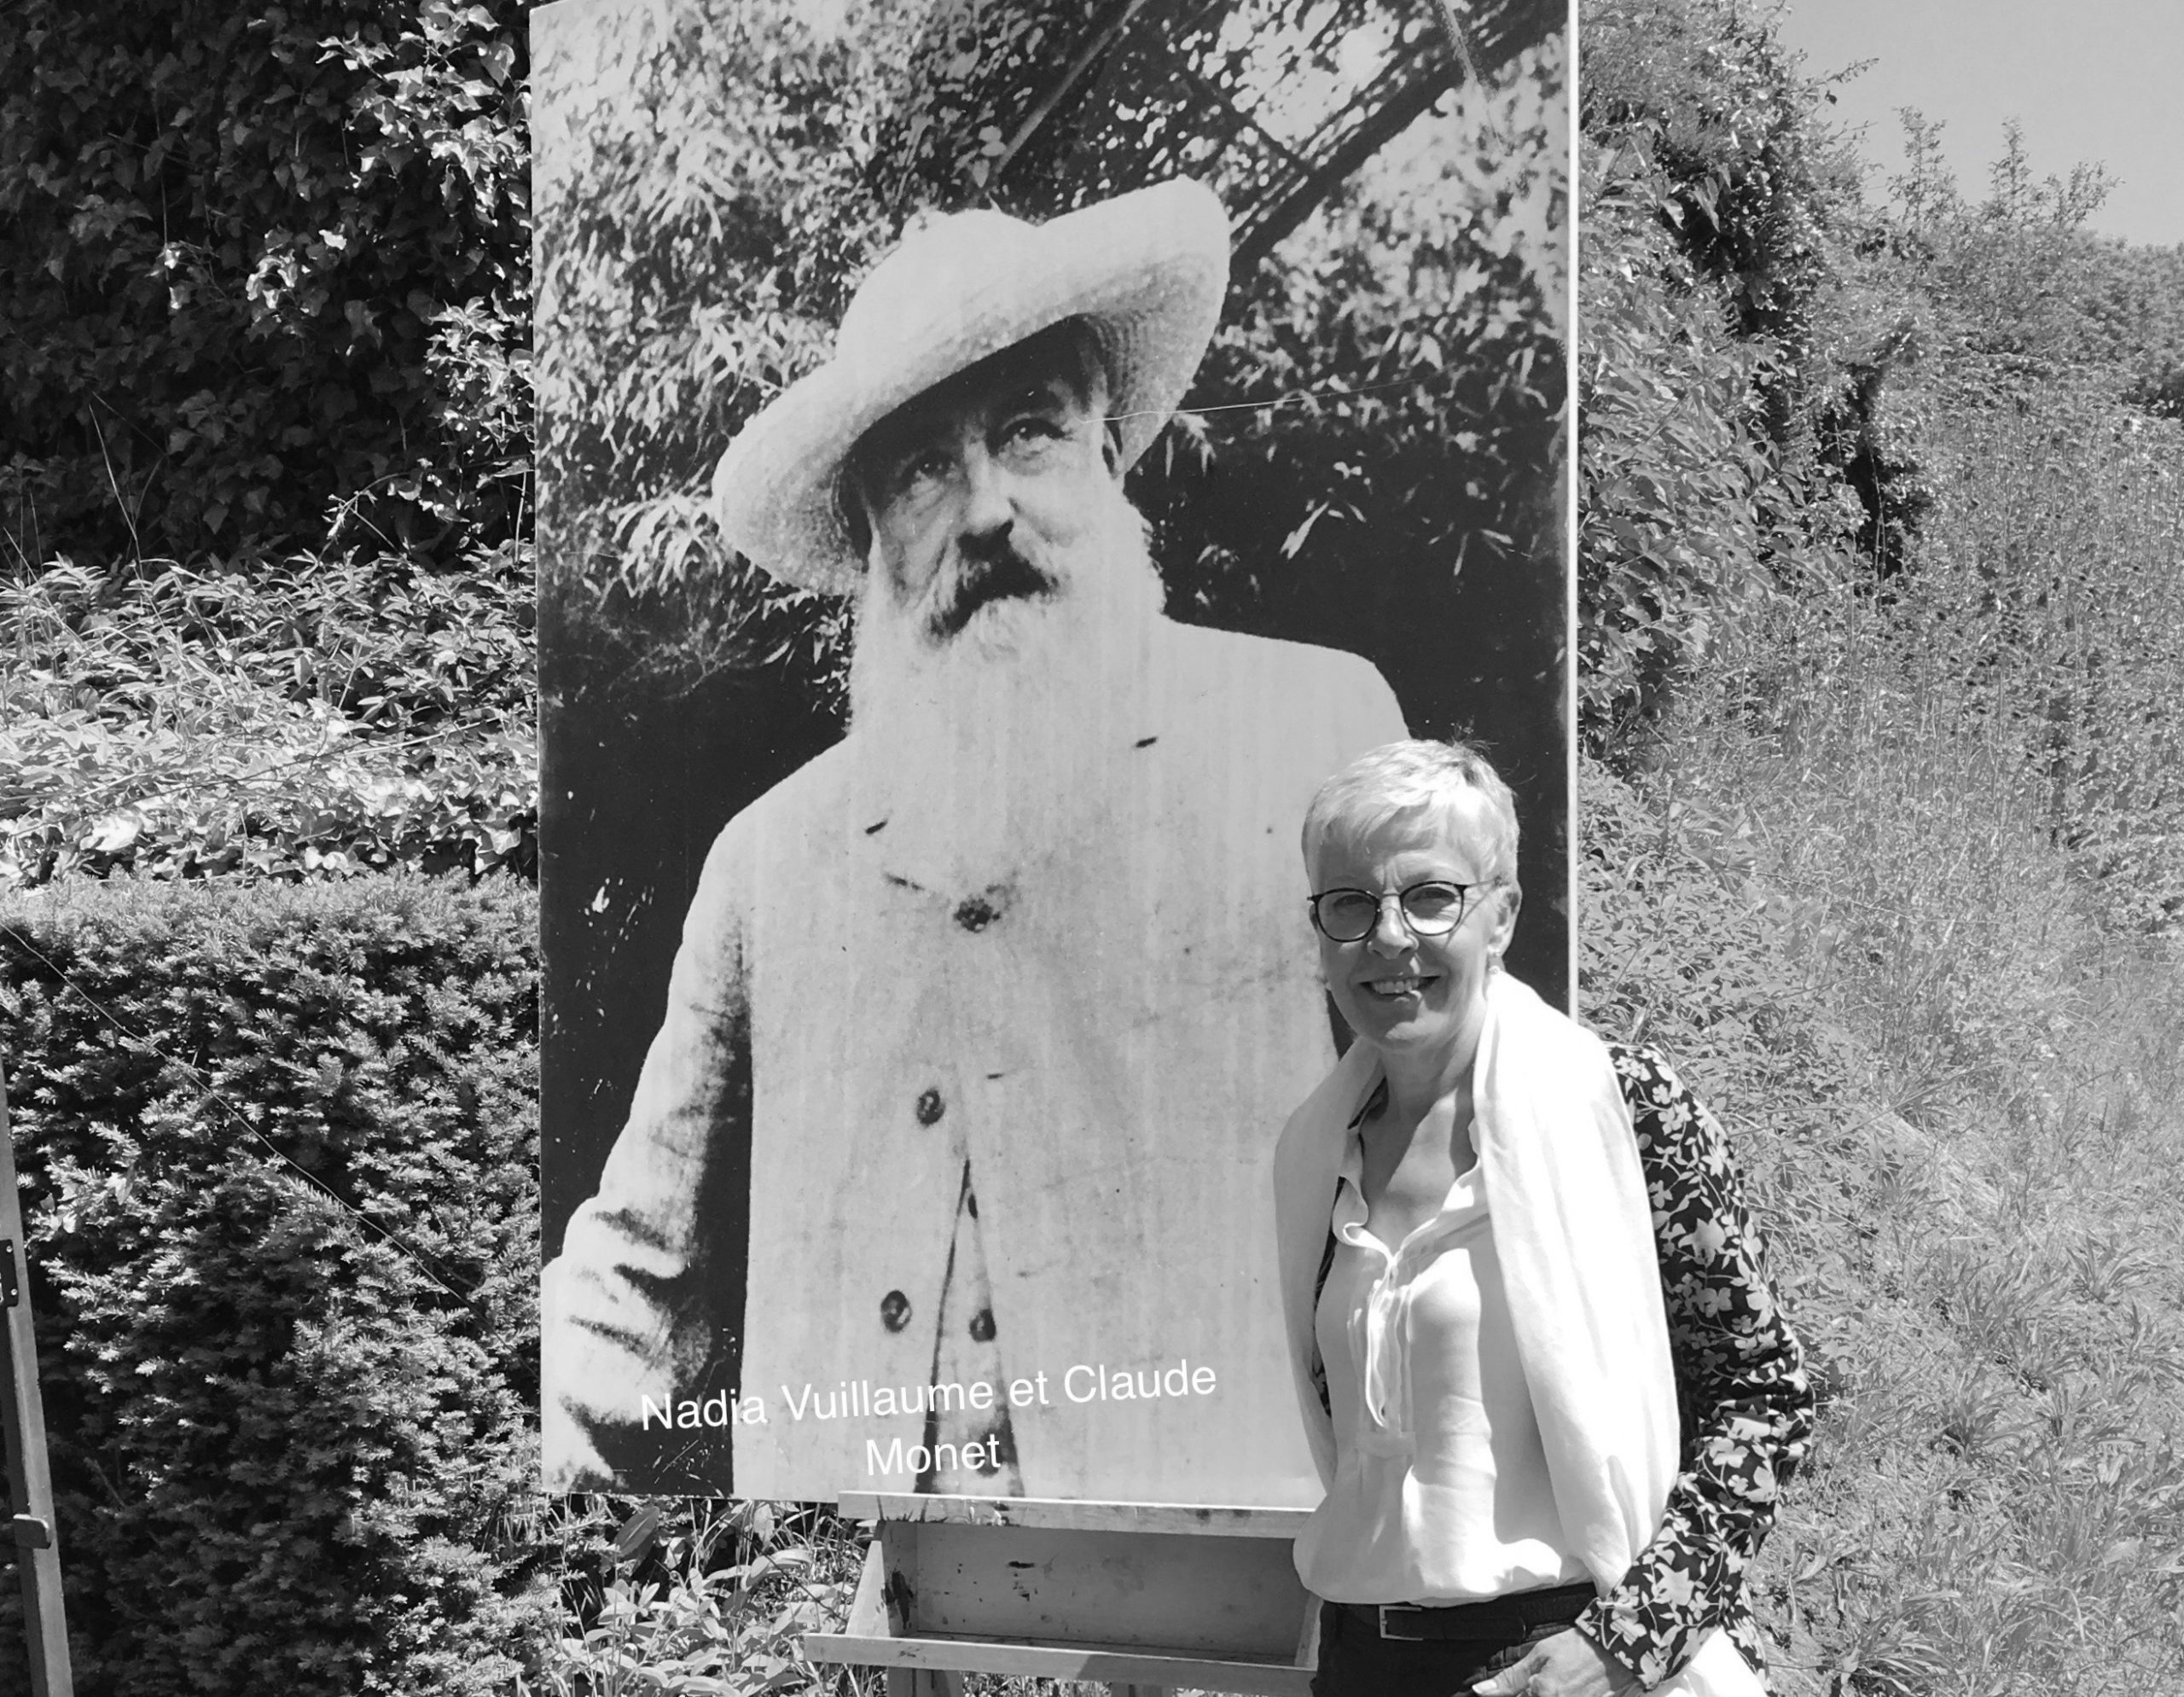 Claude Monet and Nadia Vuillaume in Giverny - France